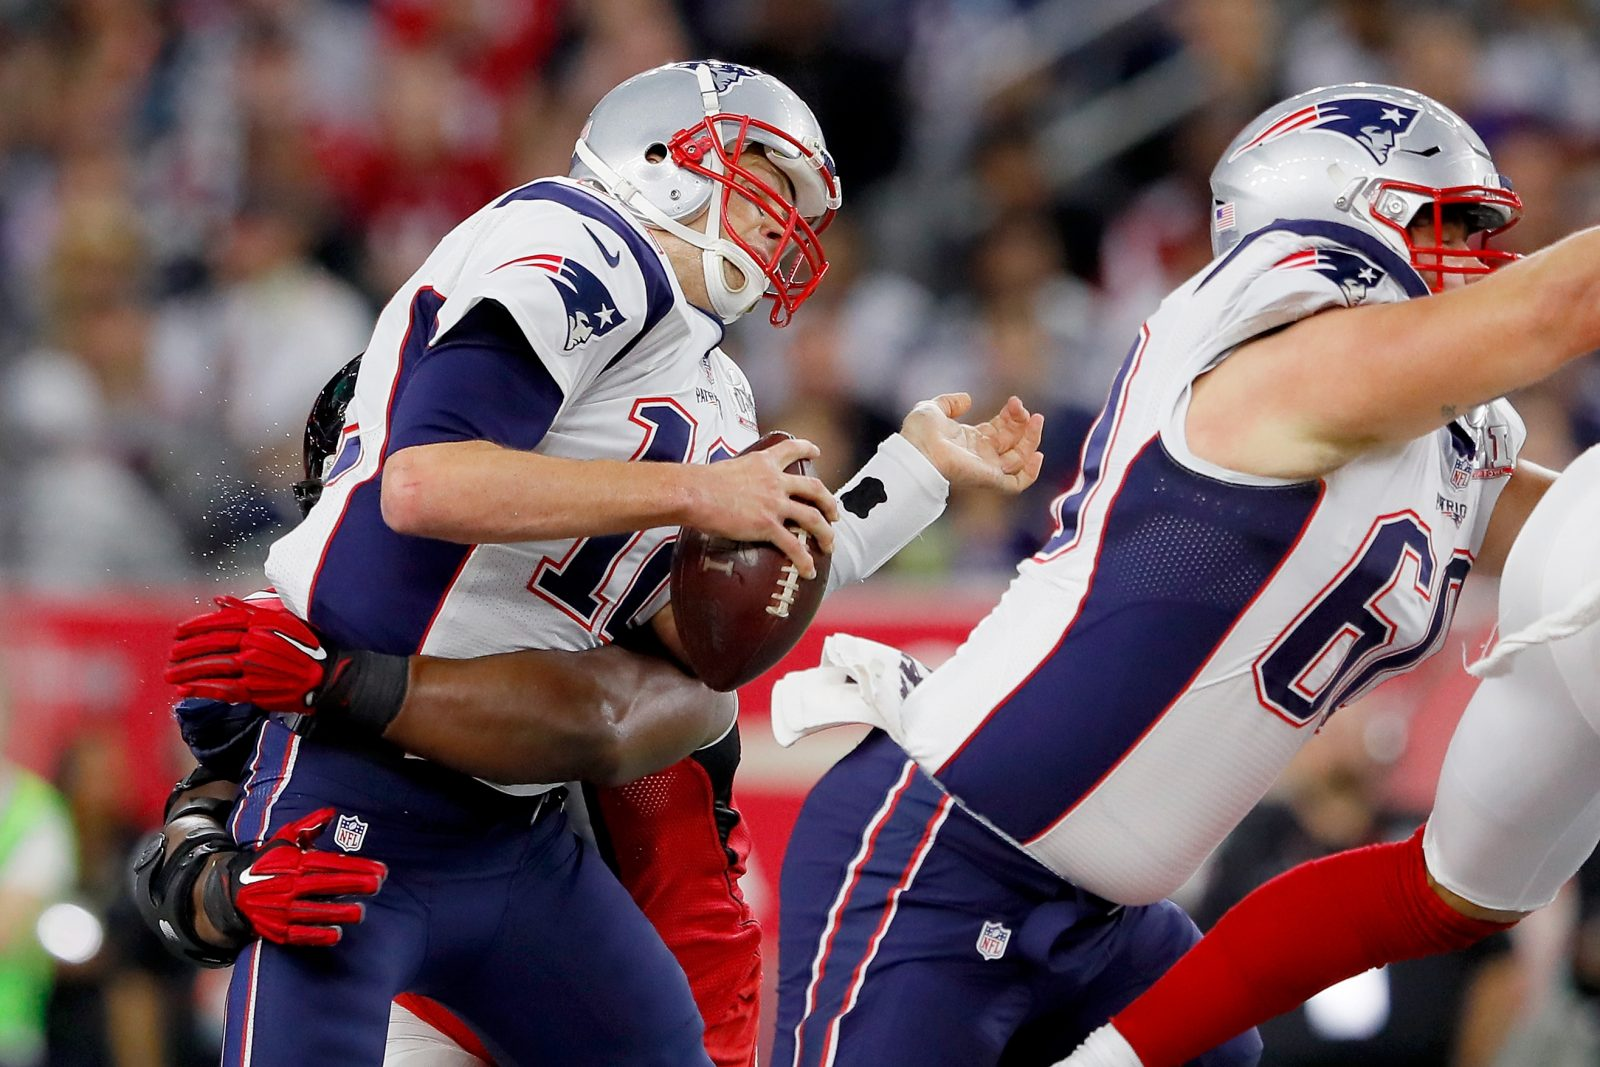 Tom Brady of the New England Patriots is hit in the first quarter against the Atlanta Falcons during Super Bowl 51. (Getty Images)